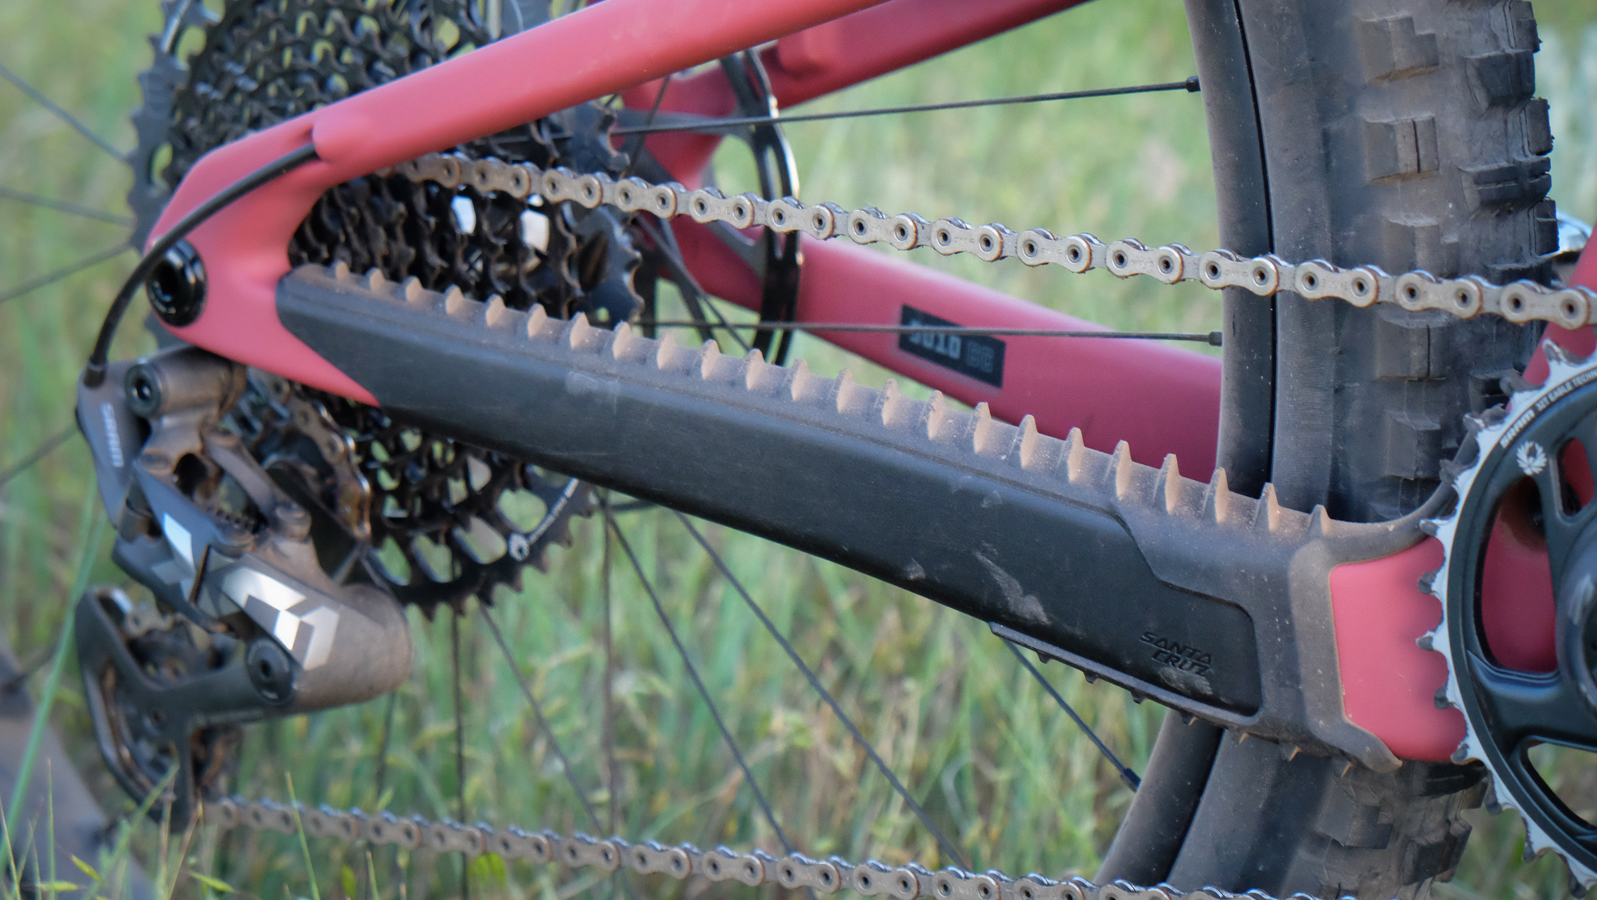 The ribbed chainstay protector silences chain slap.